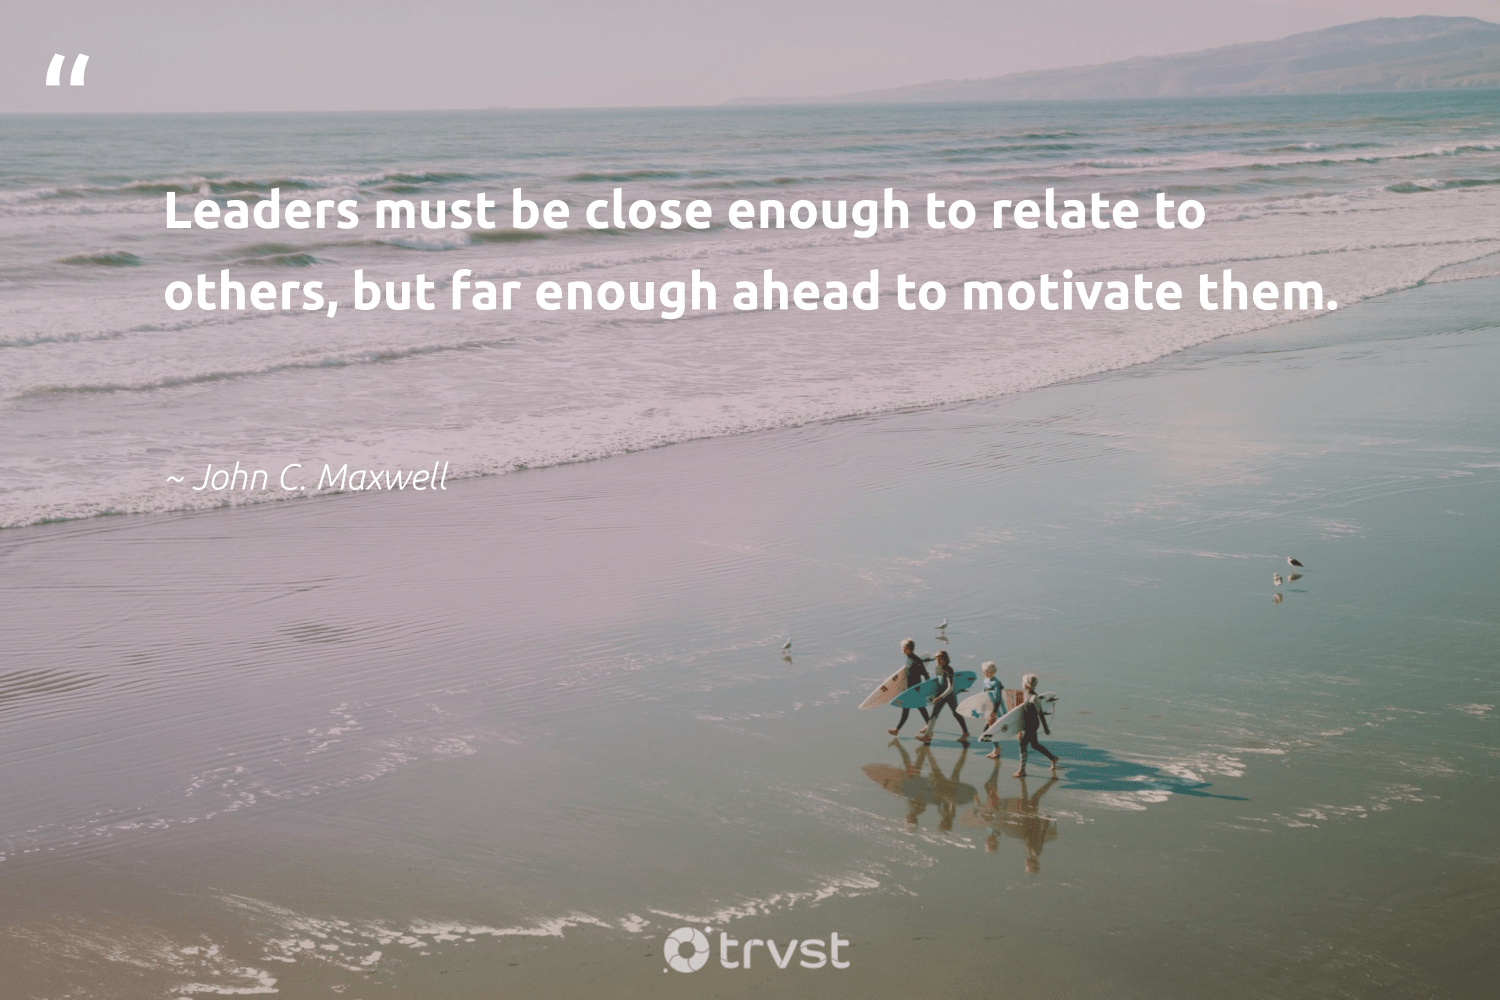 """Leaders must be close enough to relate to others, but far enough ahead to motivate them.""  - John C. Maxwell #trvst #quotes #nevergiveup #bethechange #softskills #beinspired #begreat #dosomething #futureofwork #ecoconscious #gogreen #planetearthfirst"